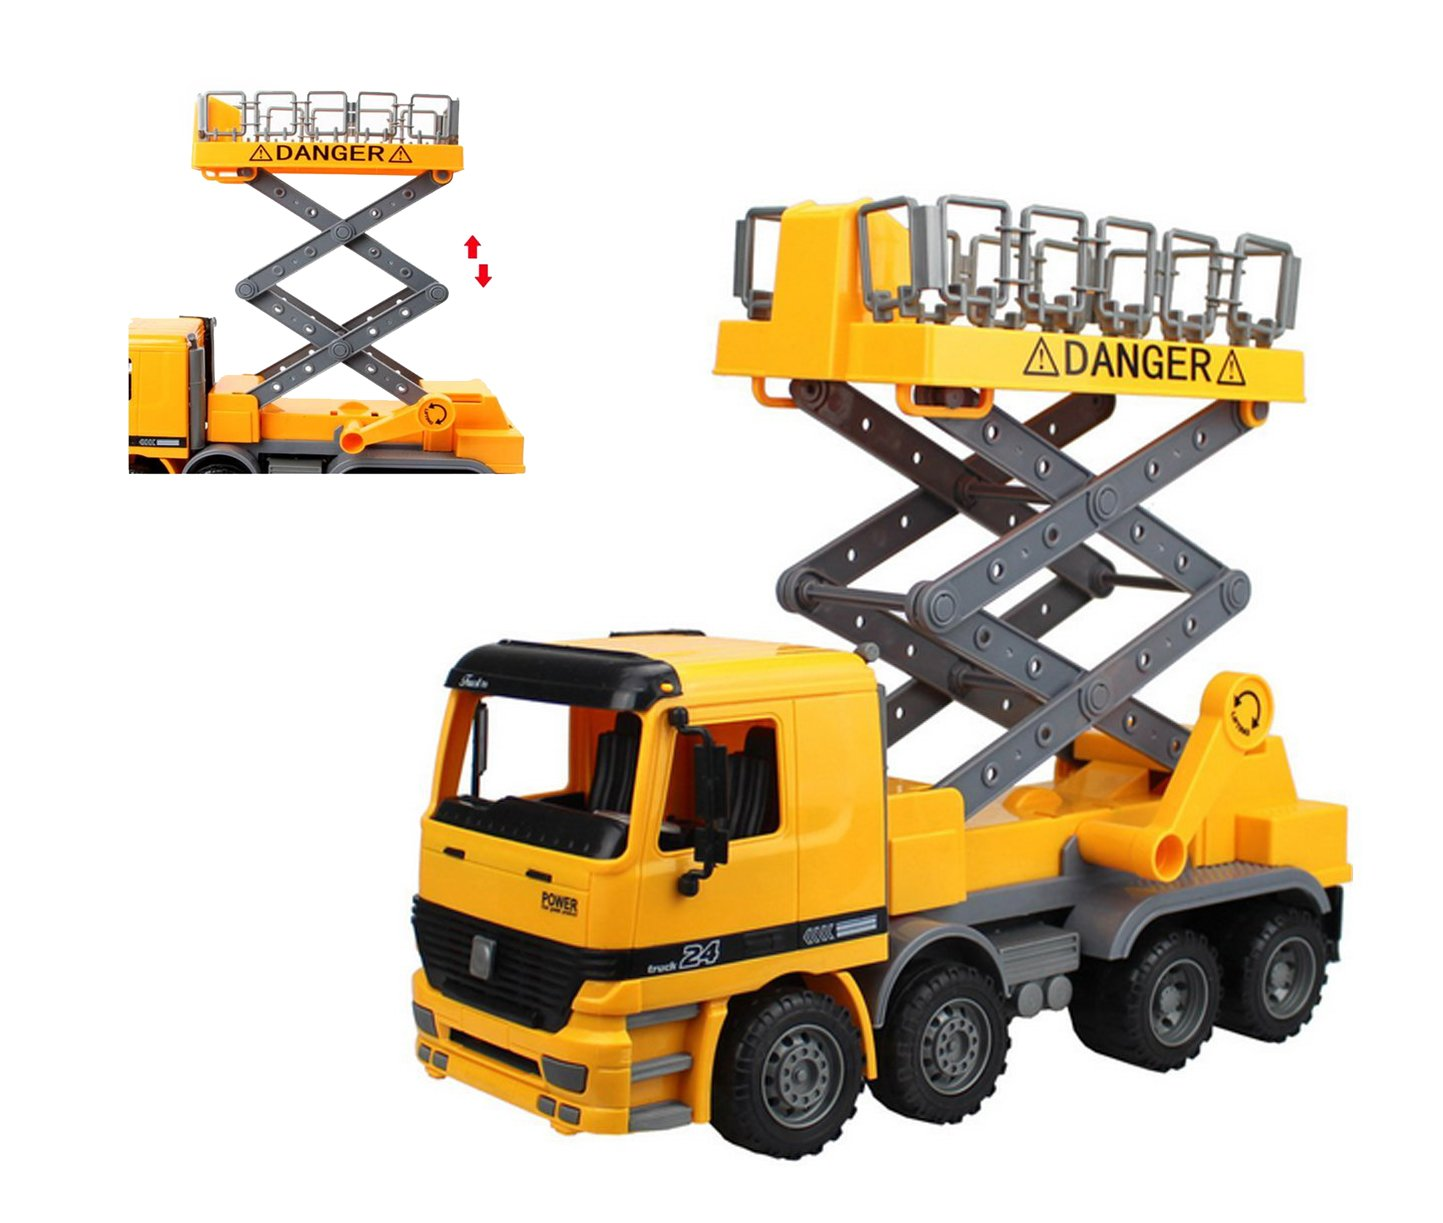 Liberty Imports 15'' Oversized Friction Super Duty Scaffold Bucket Lift Truck Construction Vehicle Toy for Kids